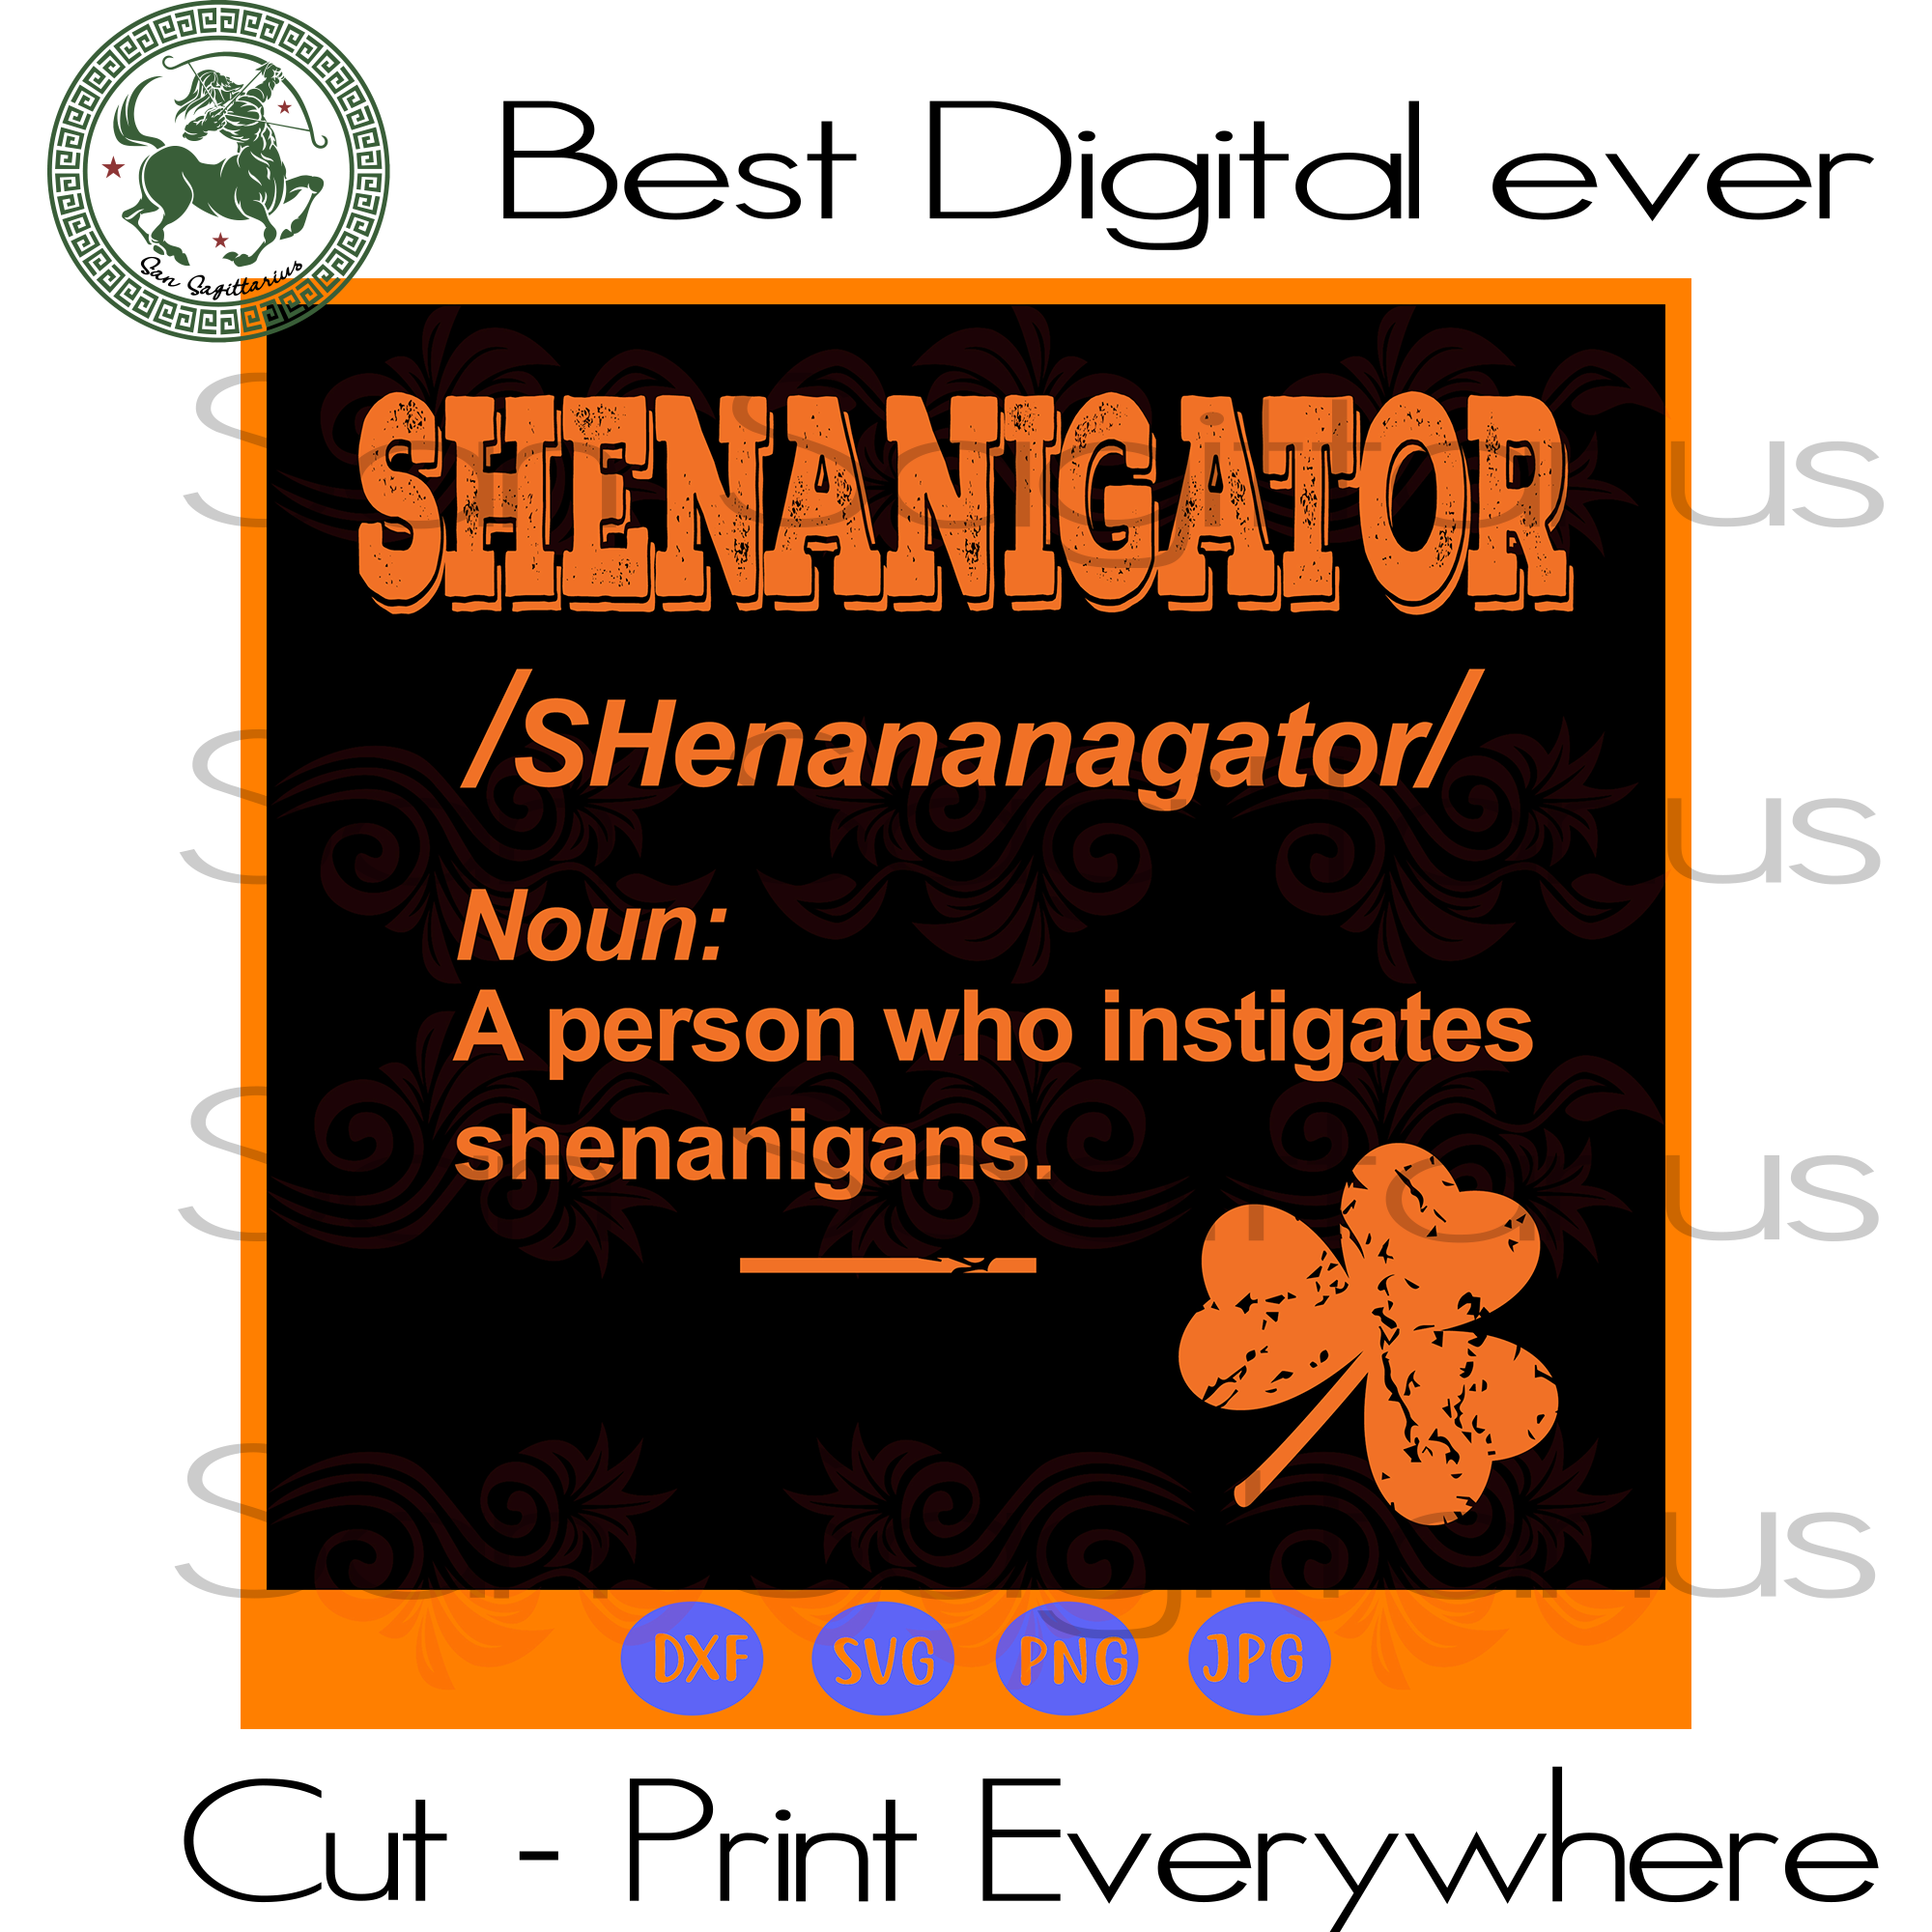 Shenanigator definition  SVG Files For Silhouette, Cricut Files, SVG DXF EPS PNG Instant Download